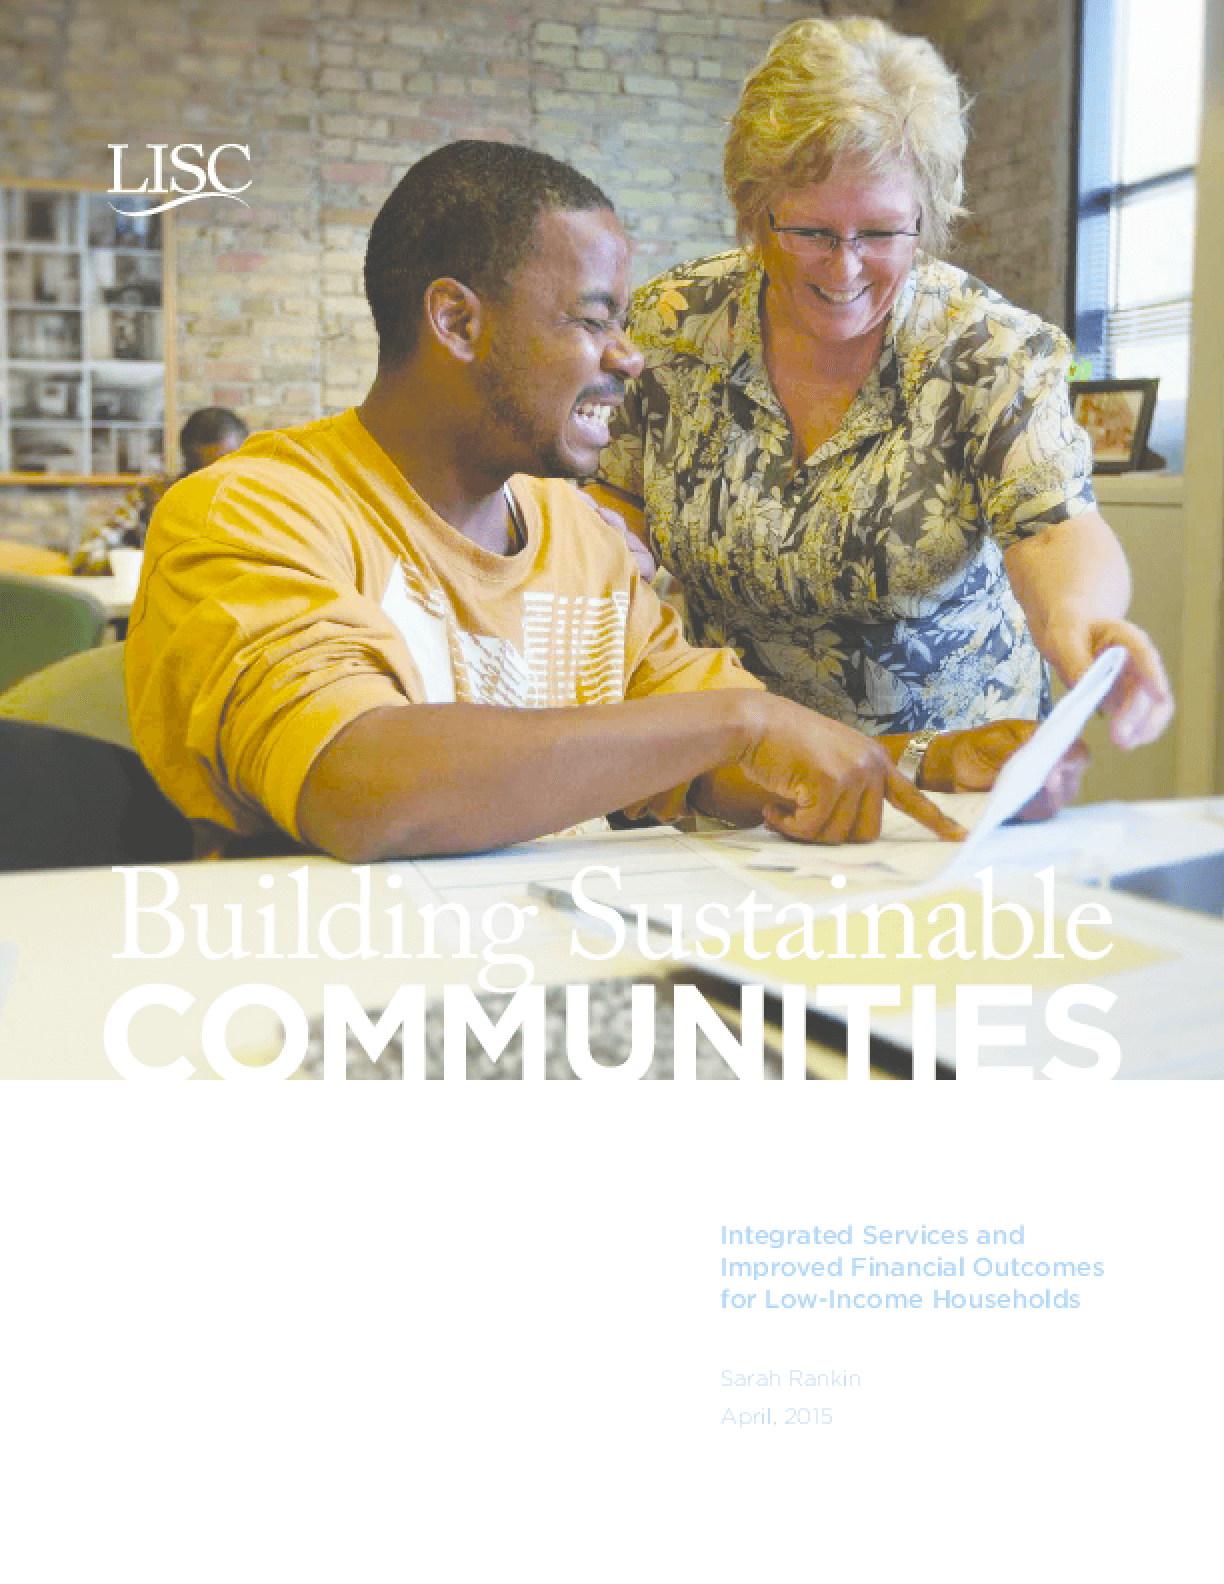 Building Sustainable Communities: Integrated Services and Improved Financial Outcomes for Low-Income Households